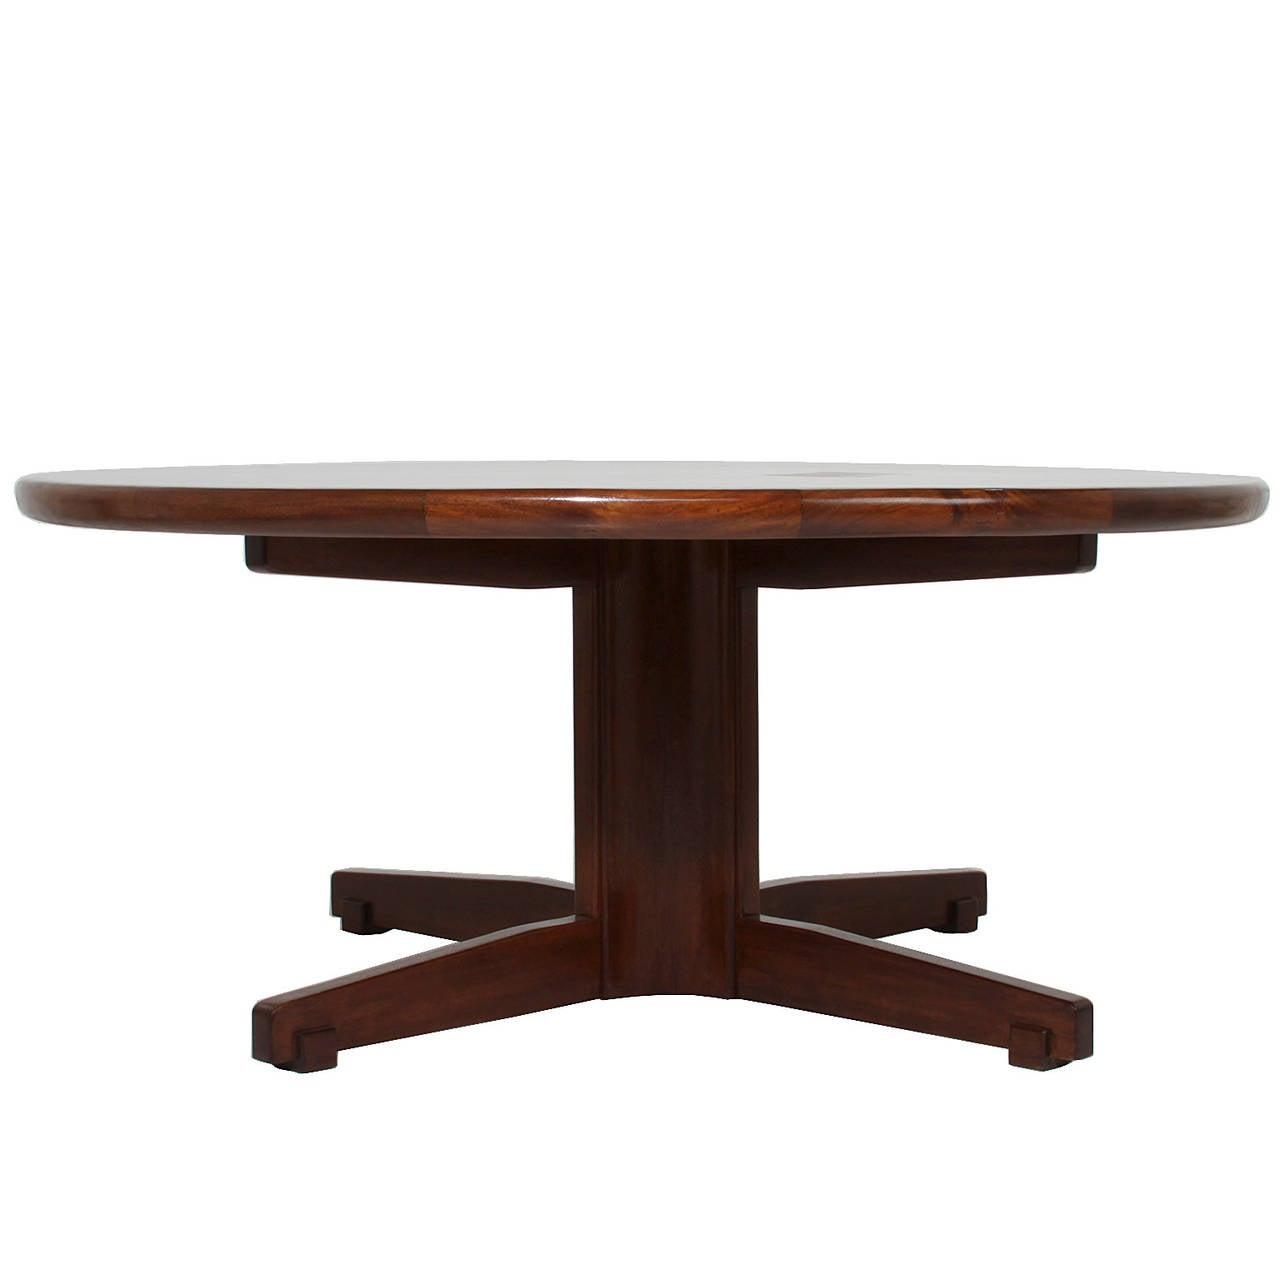 Large round brazilian dining table in cetera wood Large round dining table